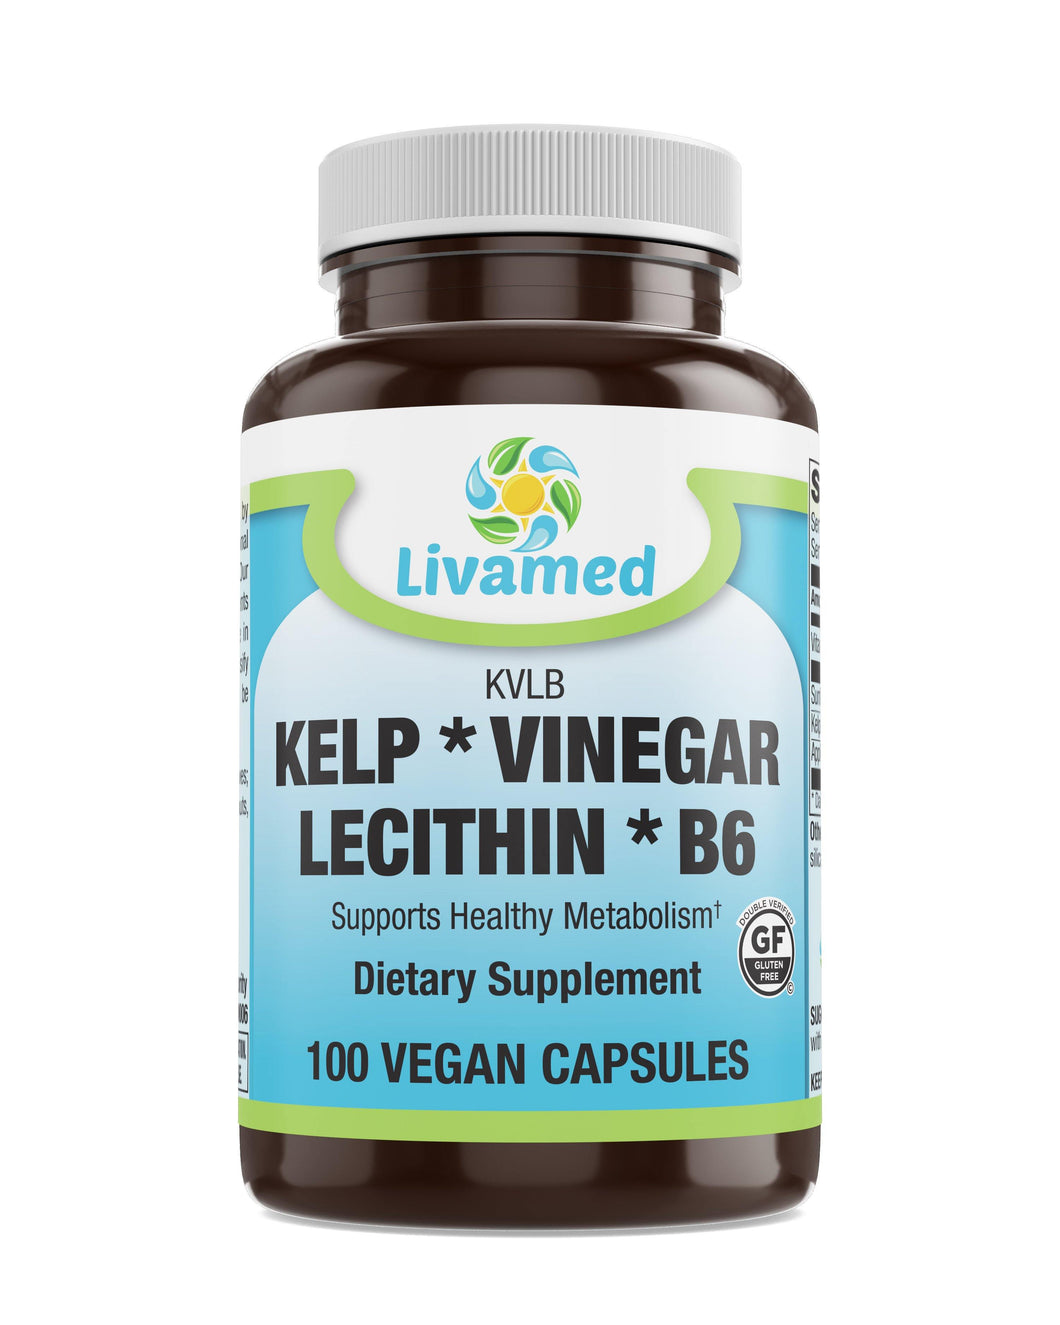 Livamed - Kelp Vinegar Lecithin B6 (KLVB) Veg Cap 100 Count